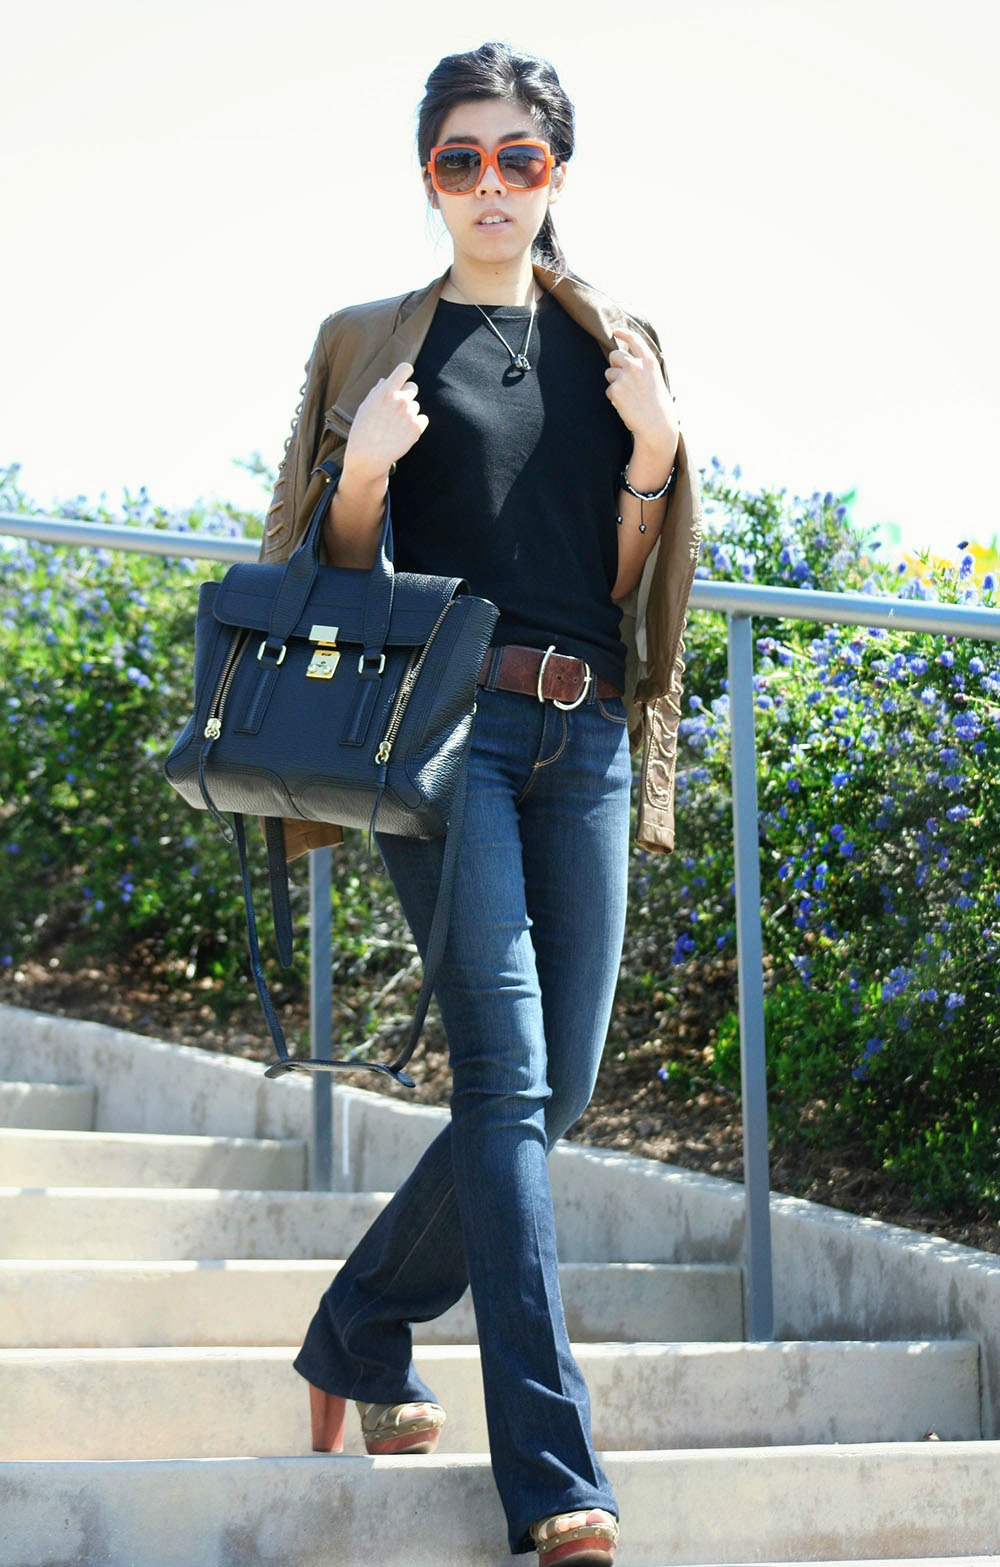 Adrienne Nguyen_Invictus_Vietnamese Fashion Blogger_How to wear a Black T Shirt with a Brown Motorcycle Jacket